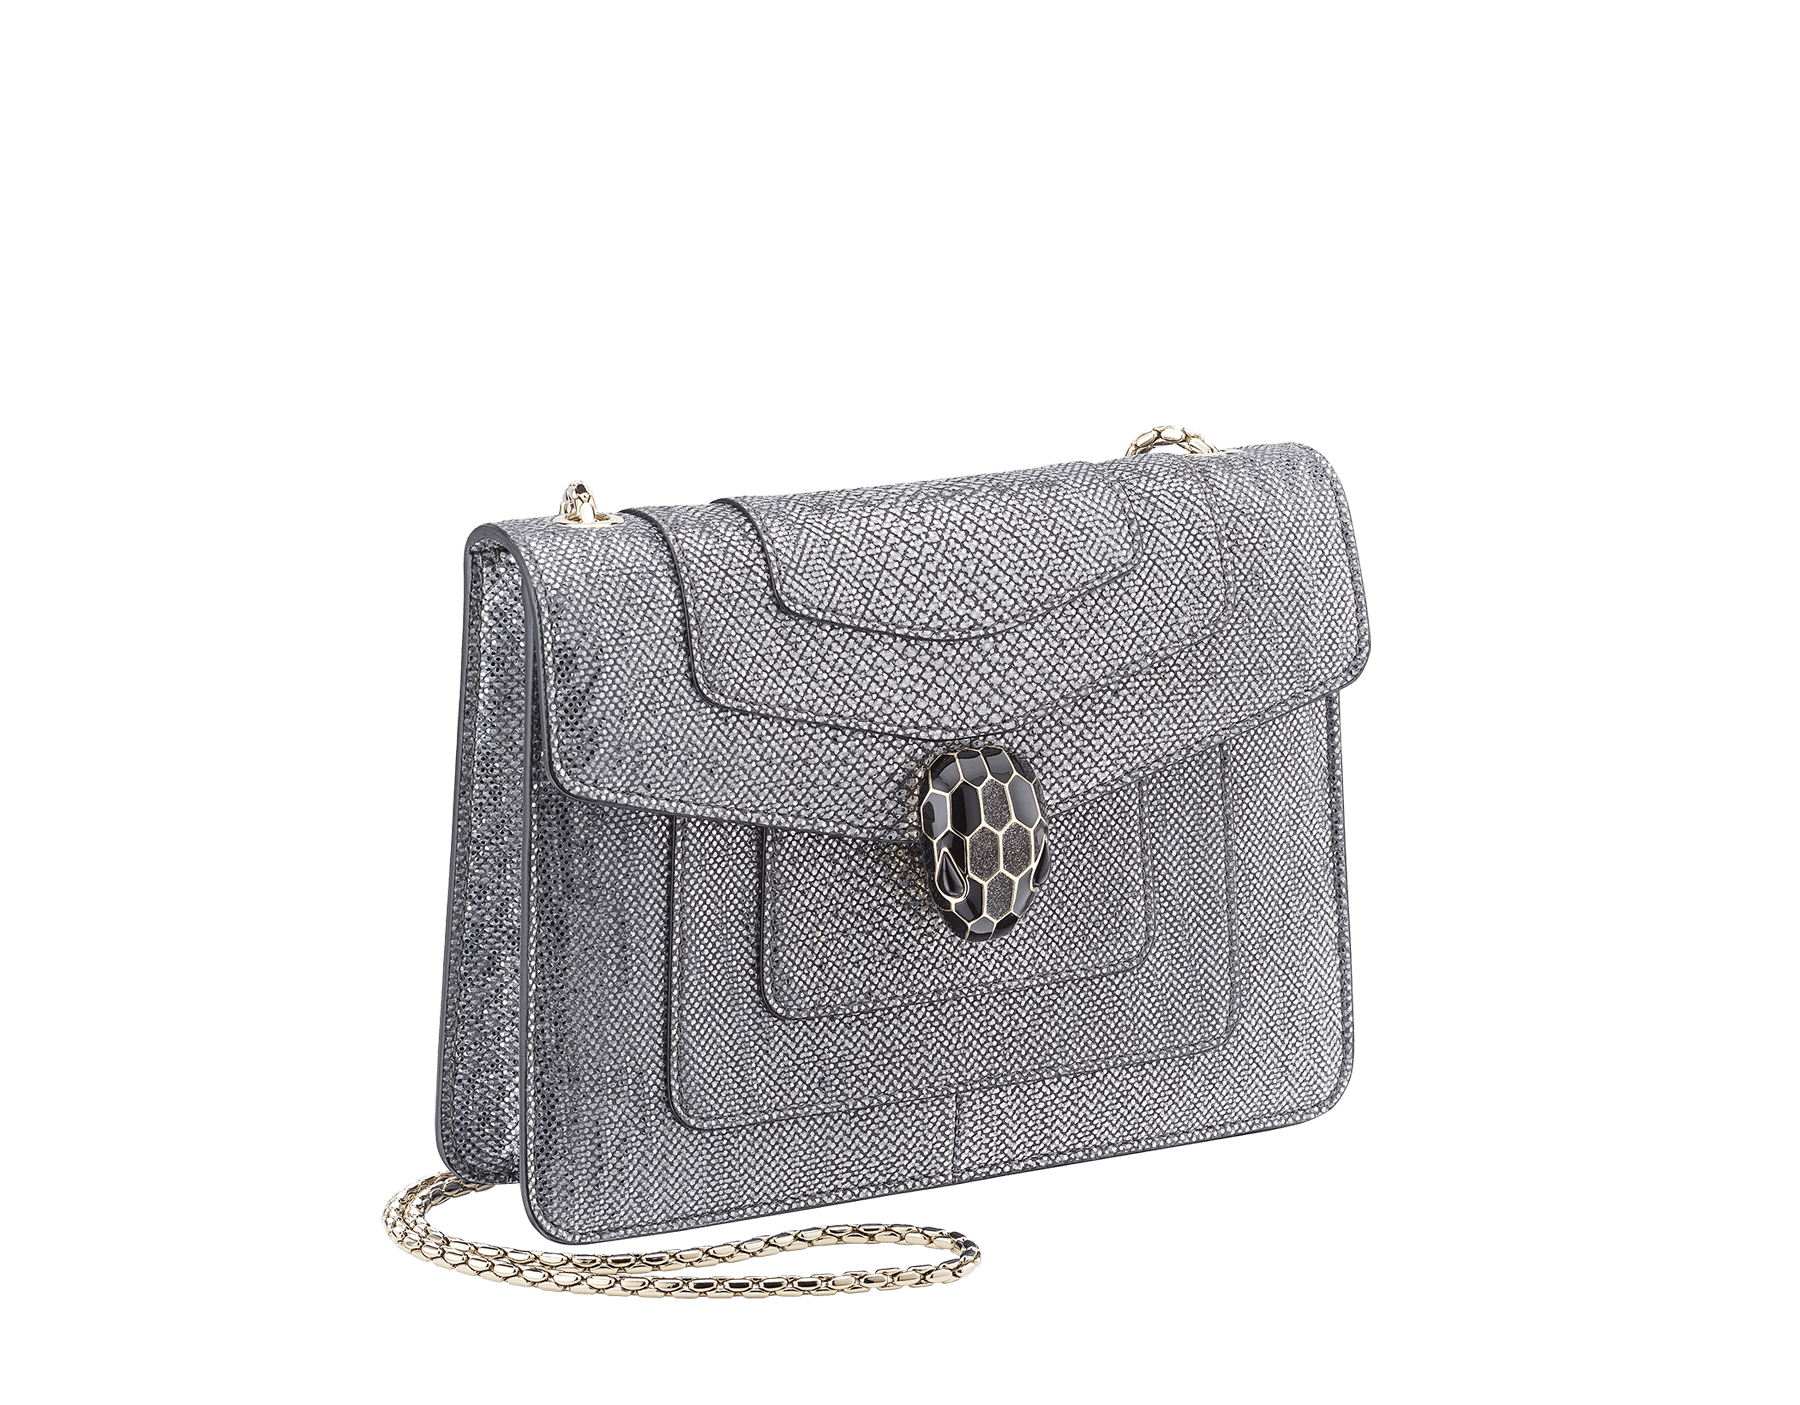 Serpenti Forever crossbody bag in charcoal diamond metallic karung skin. Snakehead closure in light gold plated brass decorated with glitter charcoal diamond and shiny black enamel, and black onyx eyes. 287939 image 2